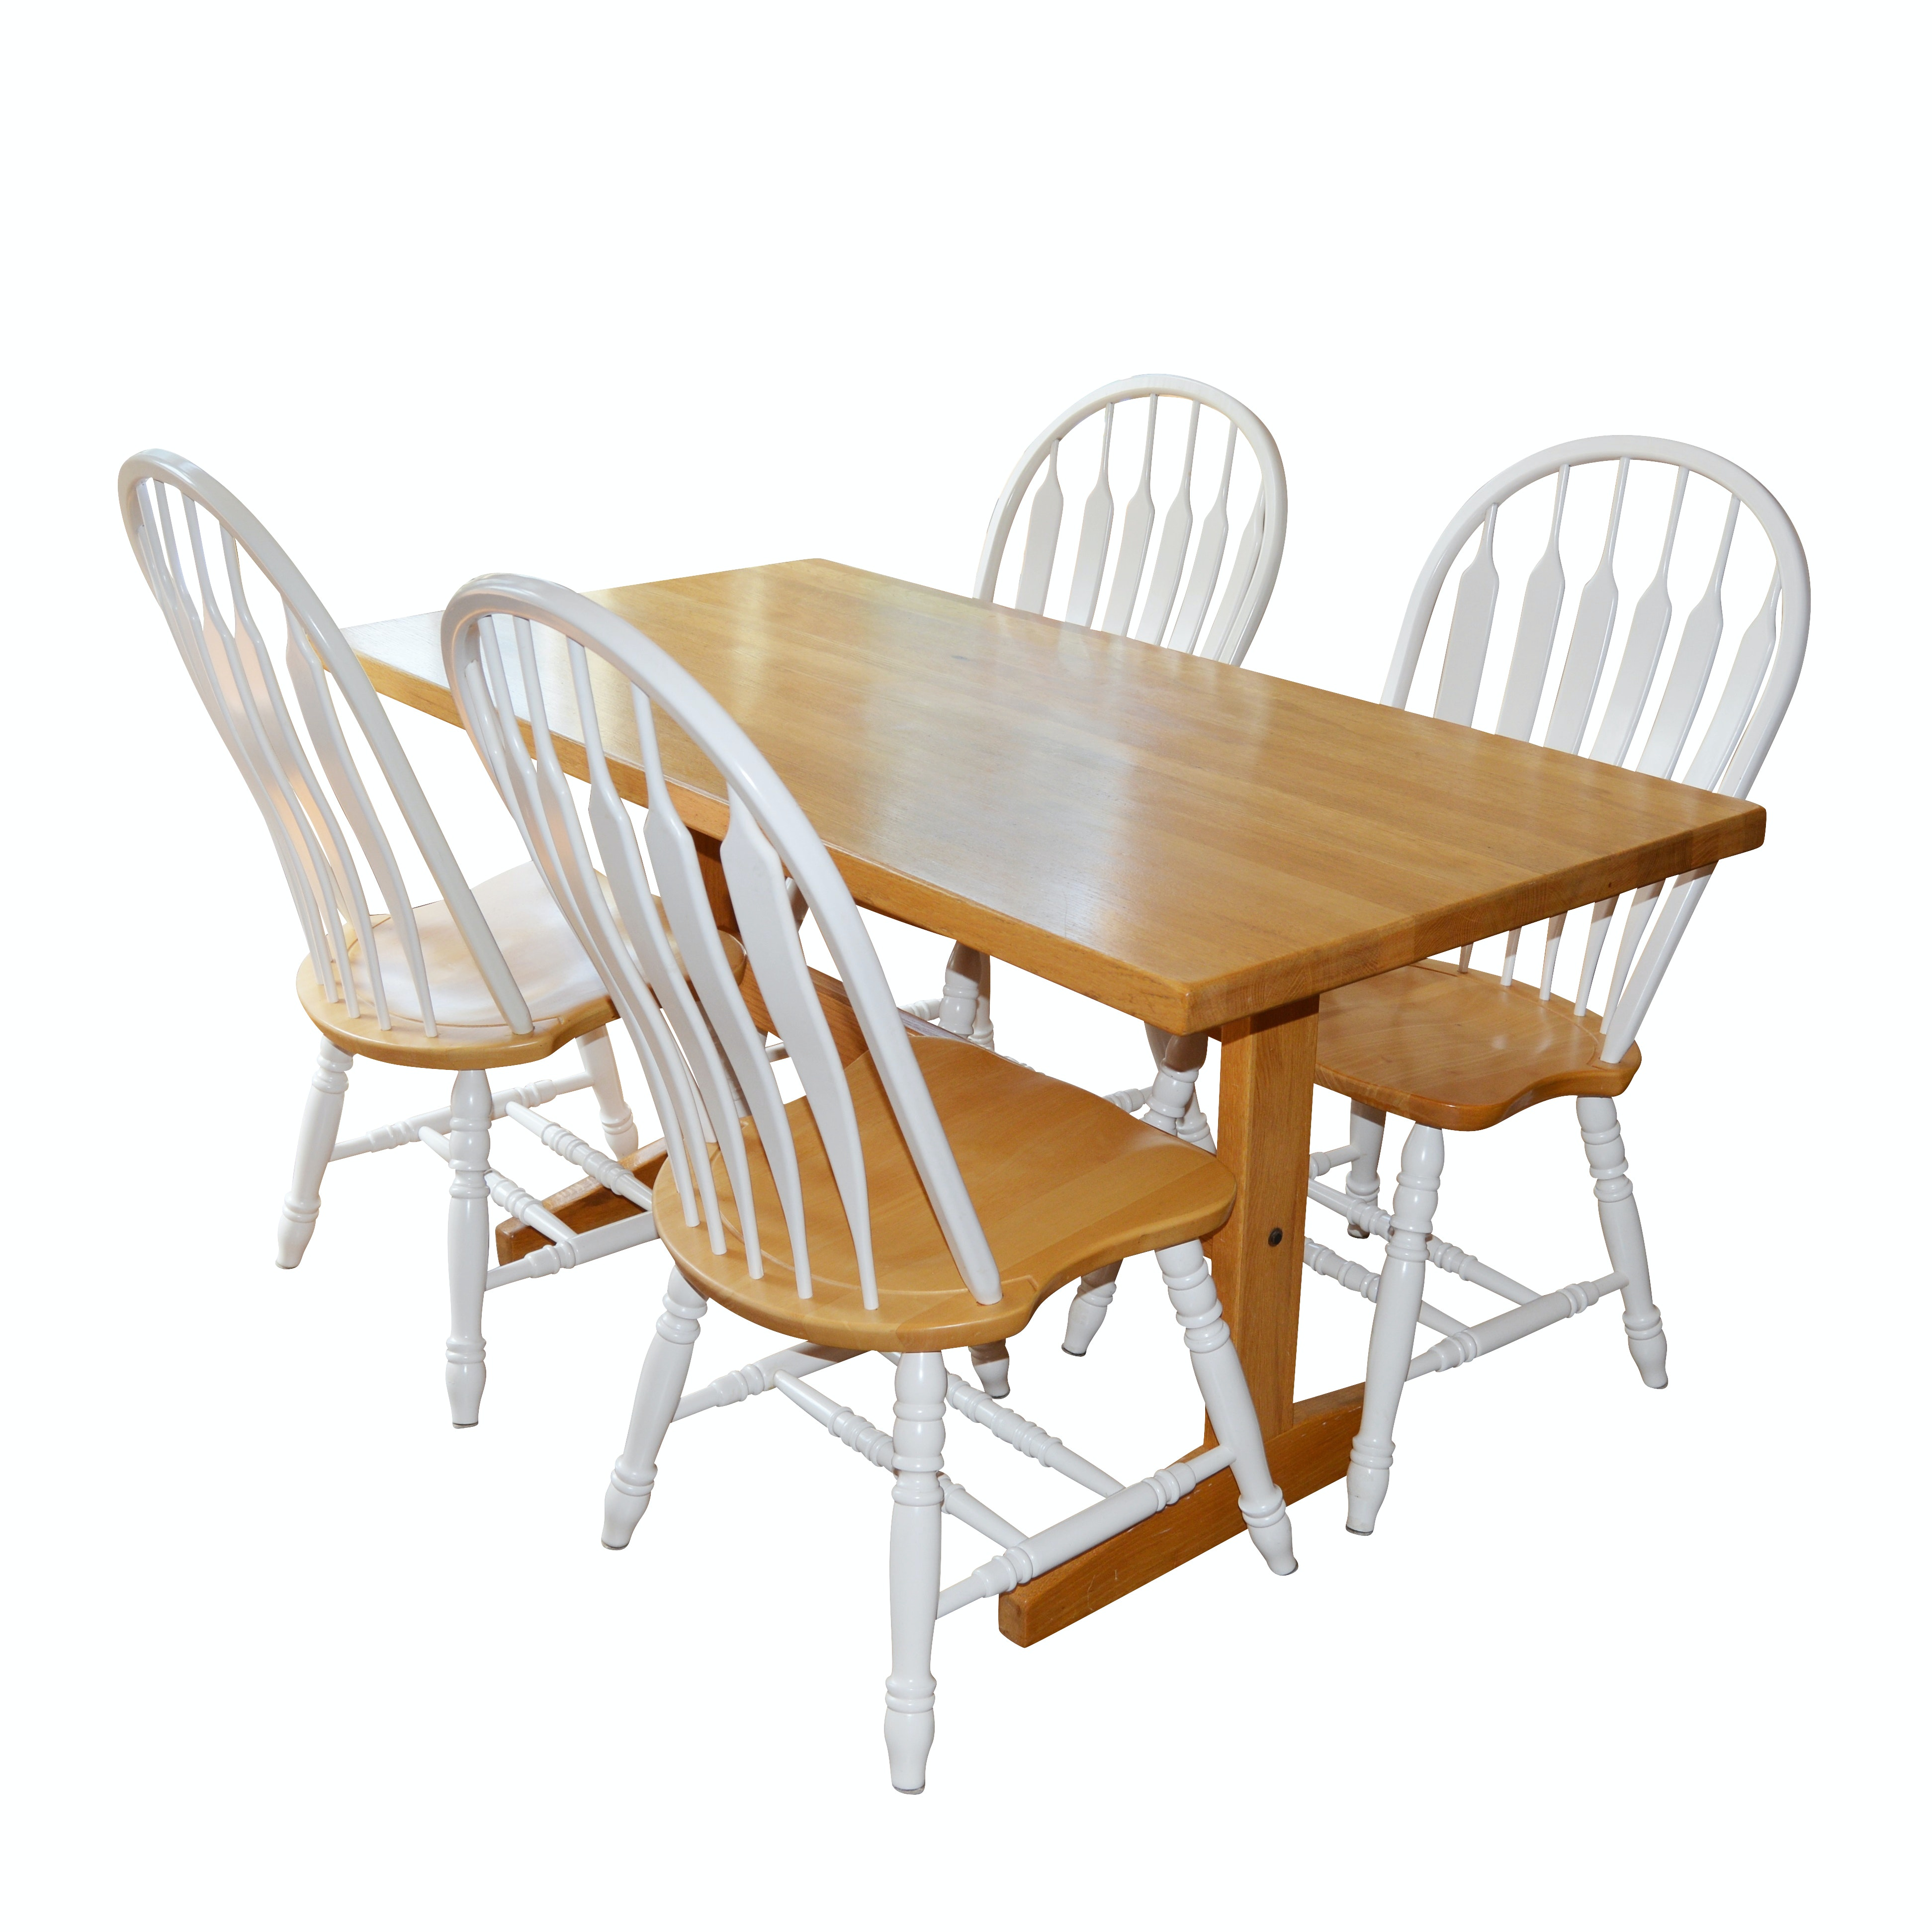 Windsor Style Painted Chairs and Maple Kitchen Table, Late 20th Century